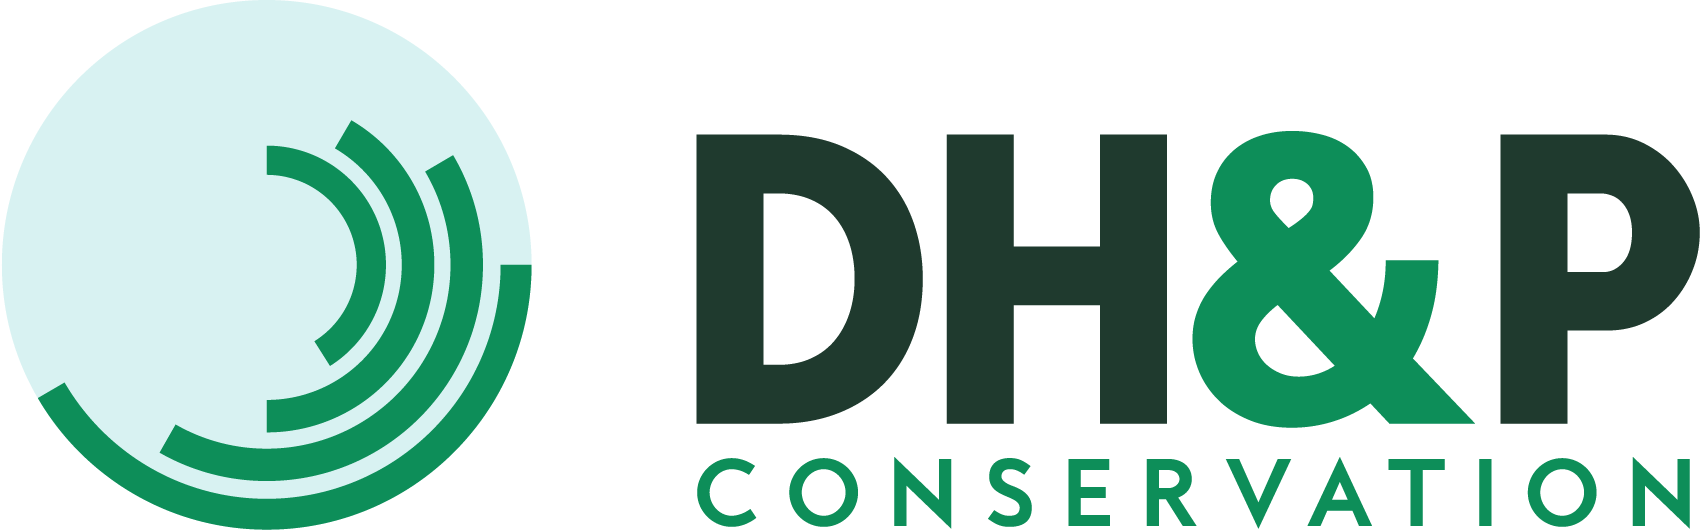 DHP Conservation s.r.o.